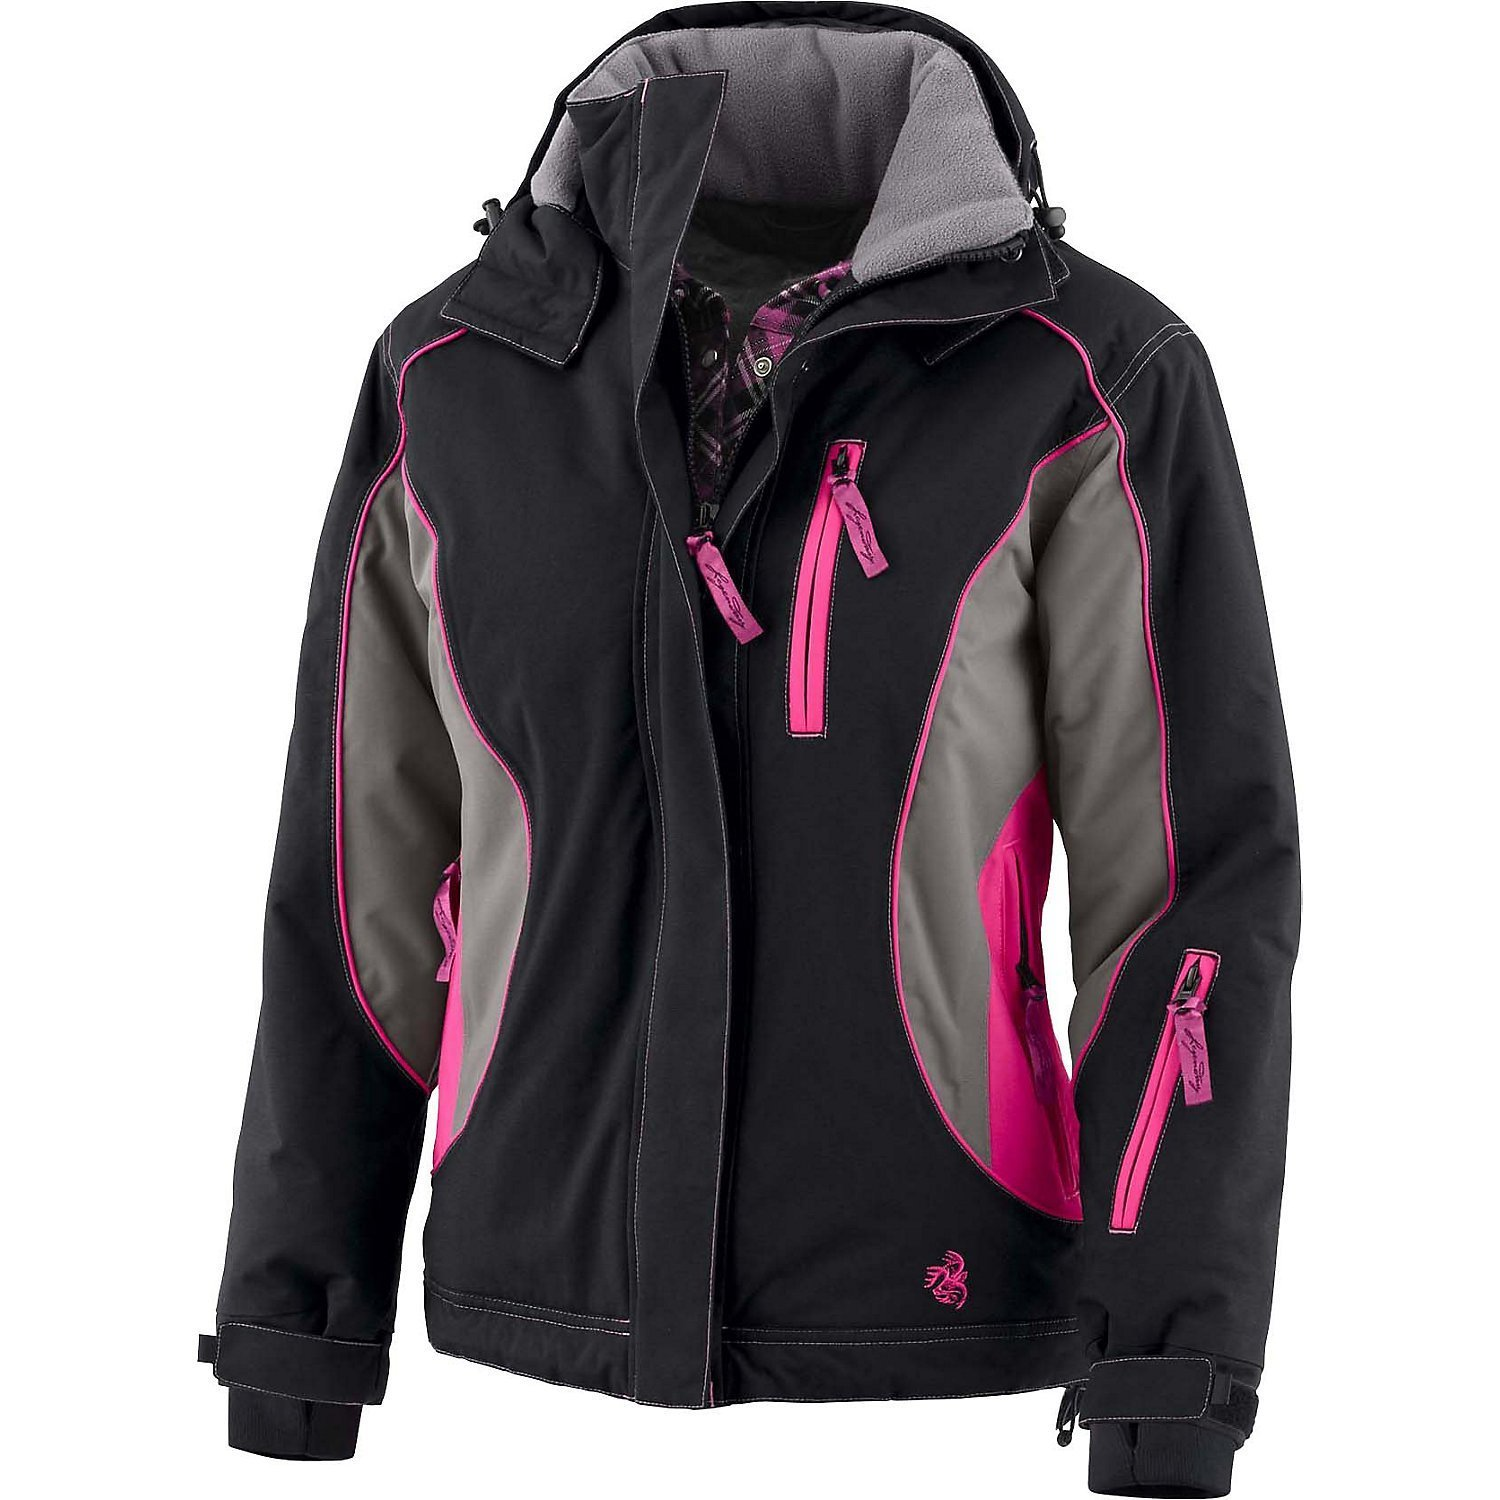 Legendary Whitetails Women's Polar Trail Pro Series Winter Jacket Black XX-Large